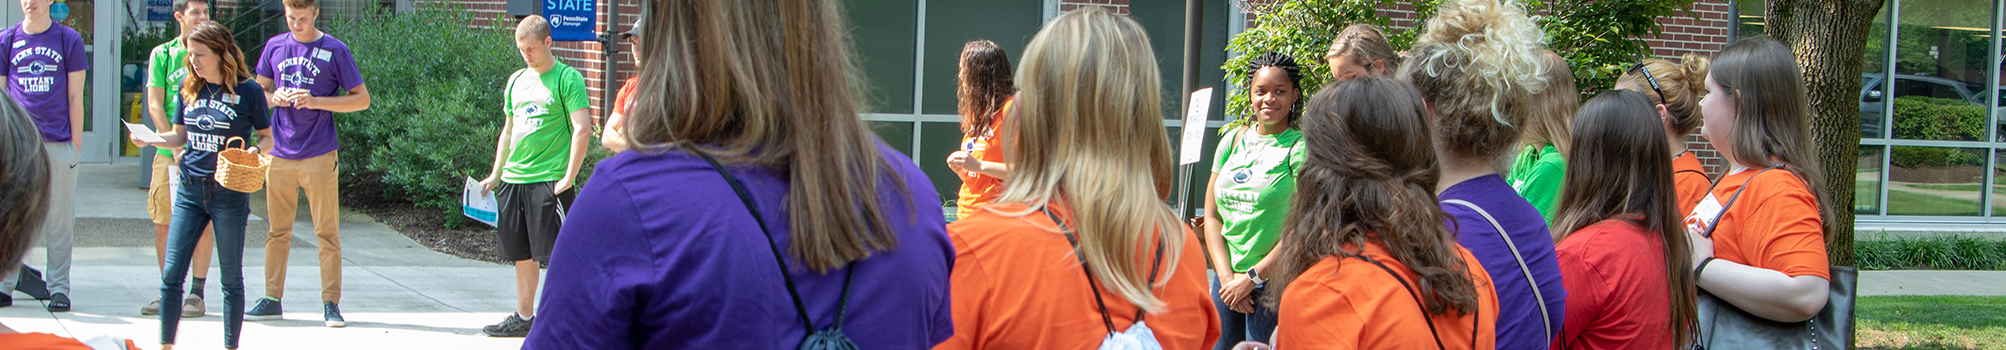 A group of students at orientation learn about Advising outside of the Atrium on a sunny day.